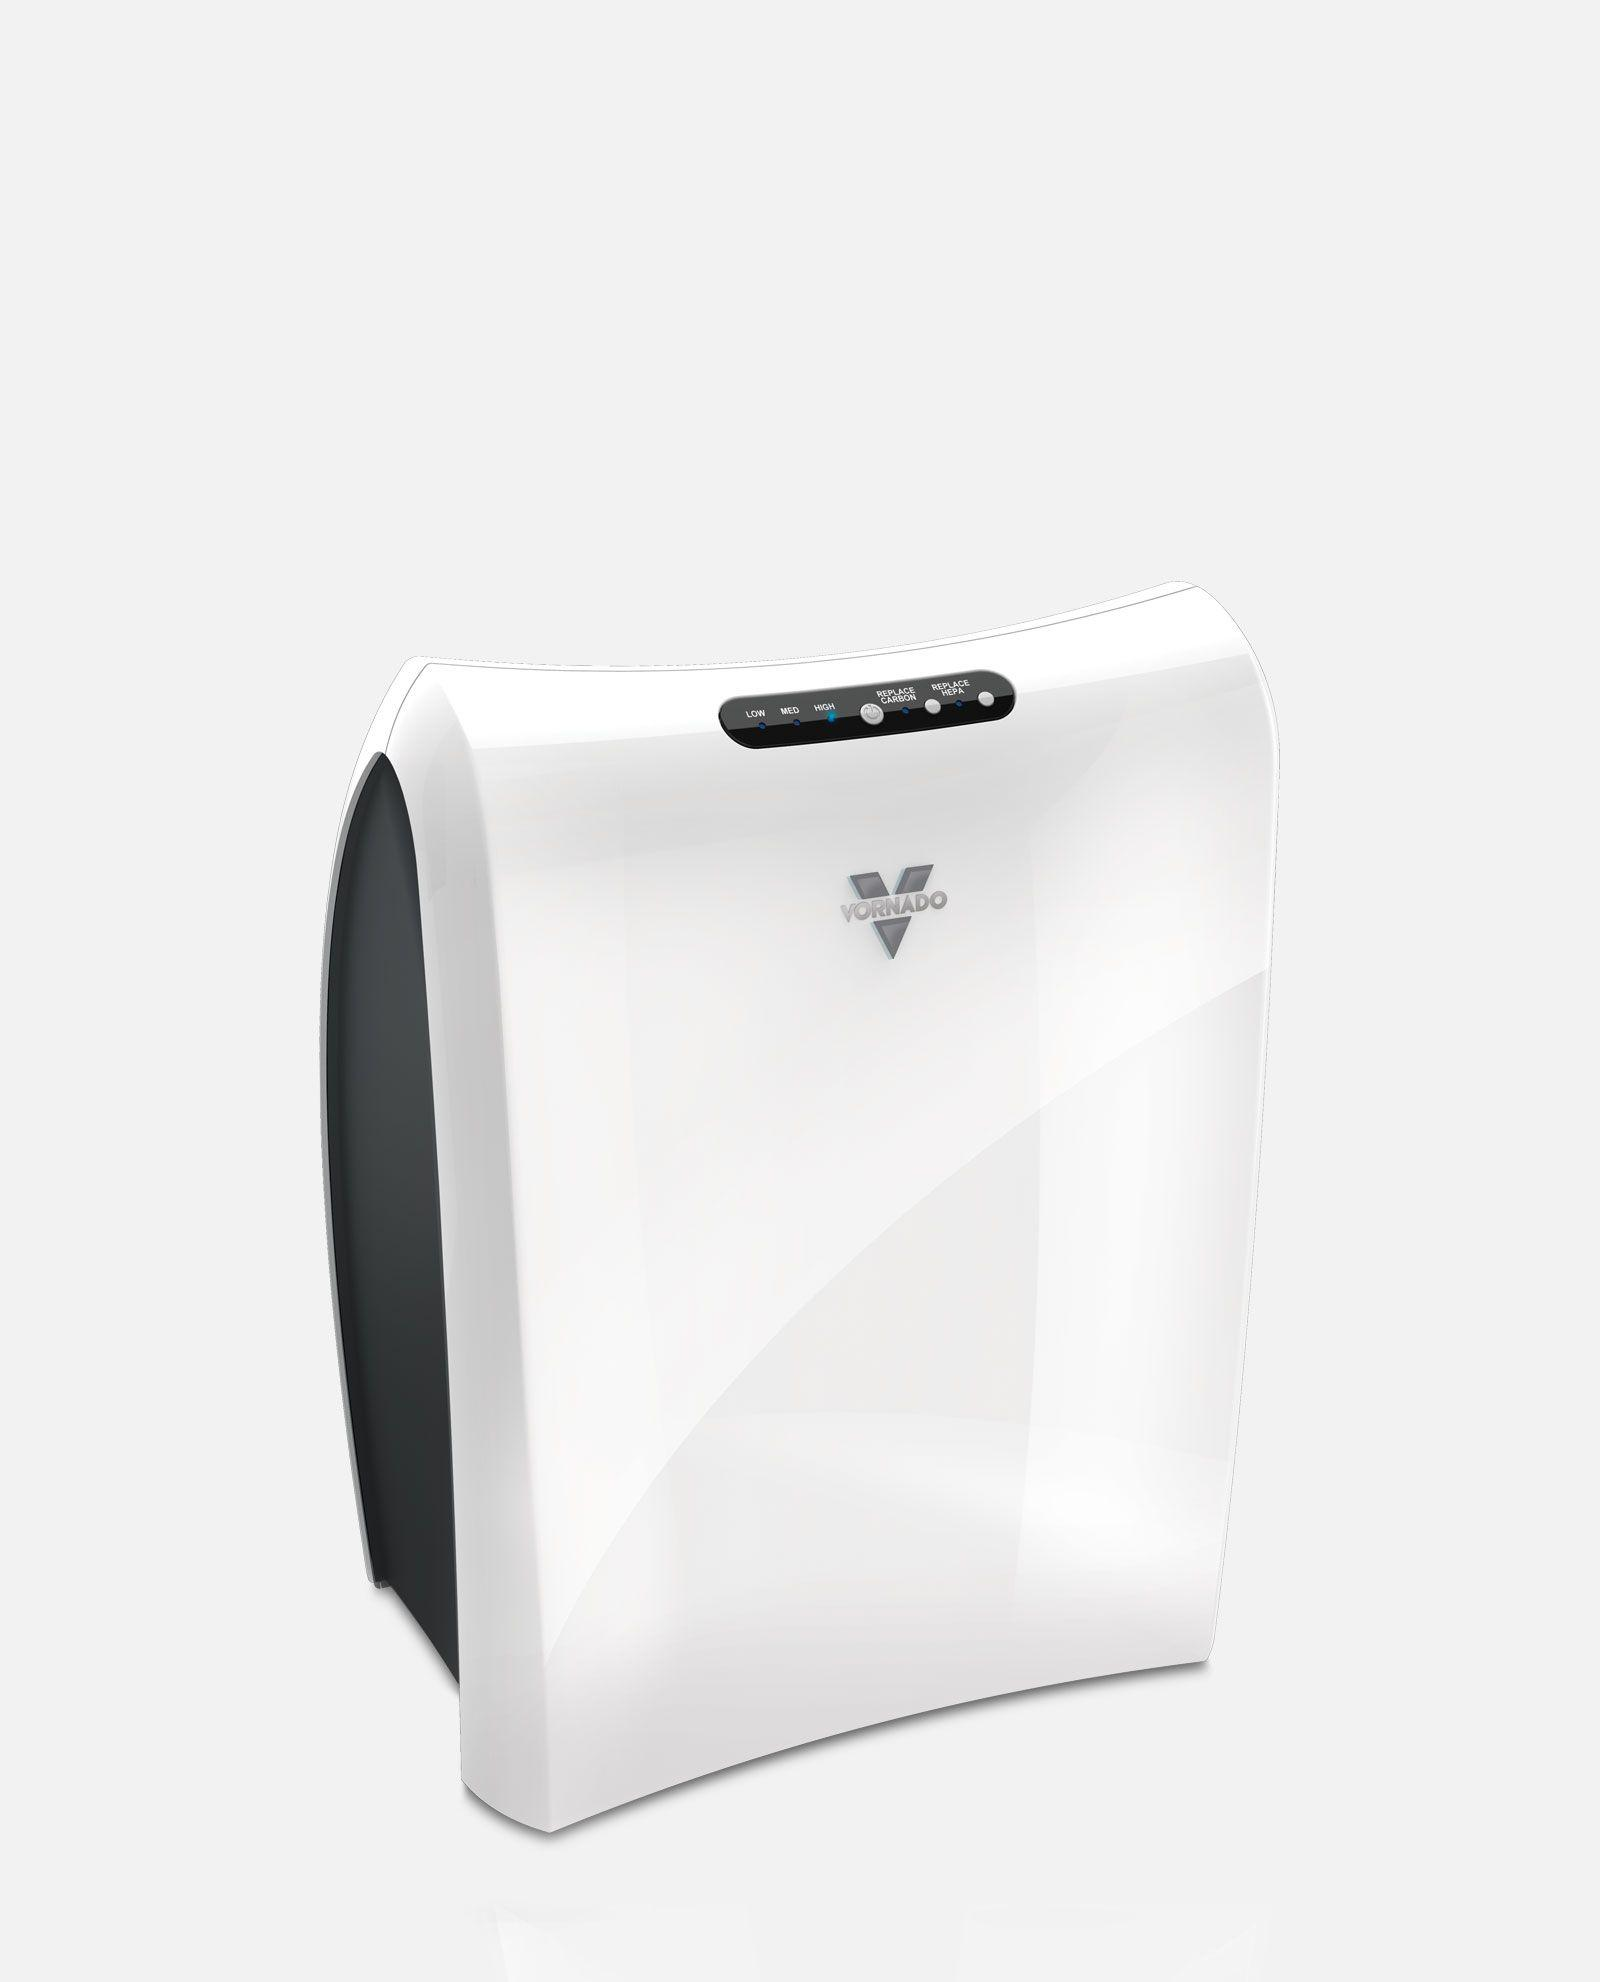 Home > Shop > Air Purifiers > True HEPA > AC350 True HEPA Air Pur  #485B5F